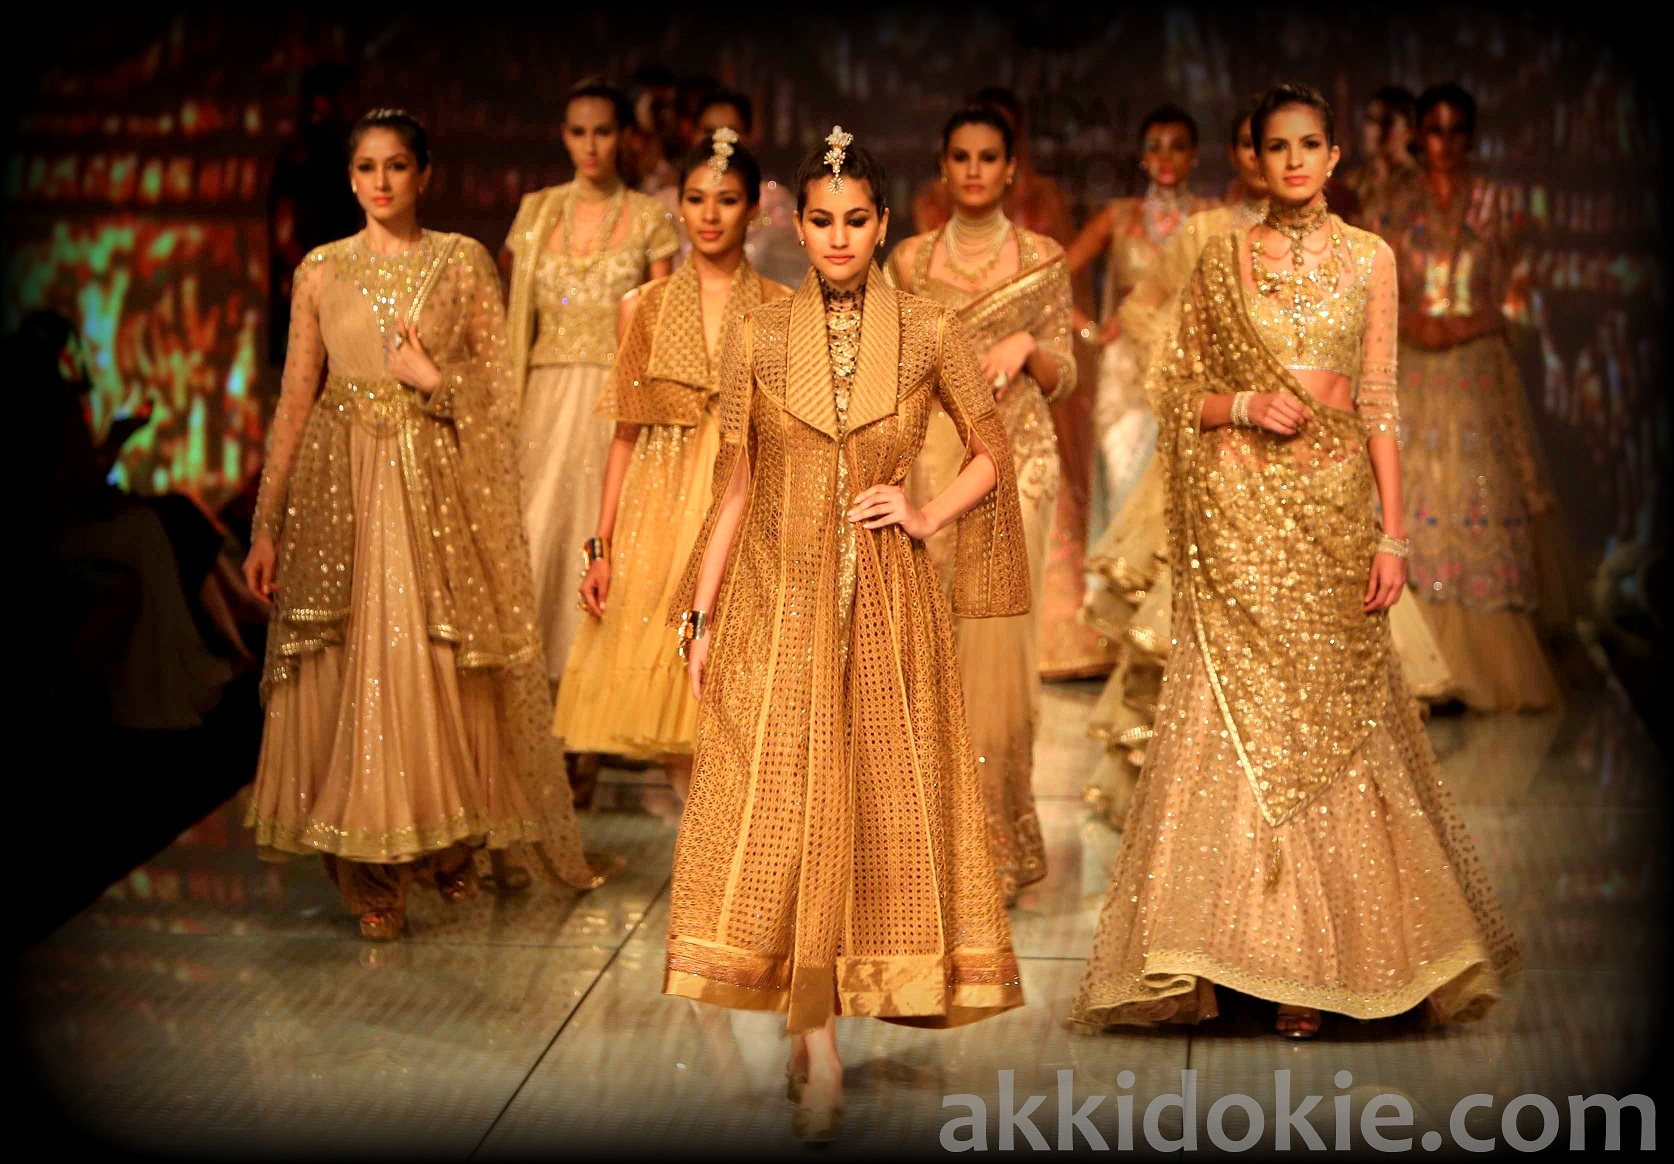 Tarun Tahiliani at  BMW India Bridal Fashion Week 2014 - akkidokie (68)